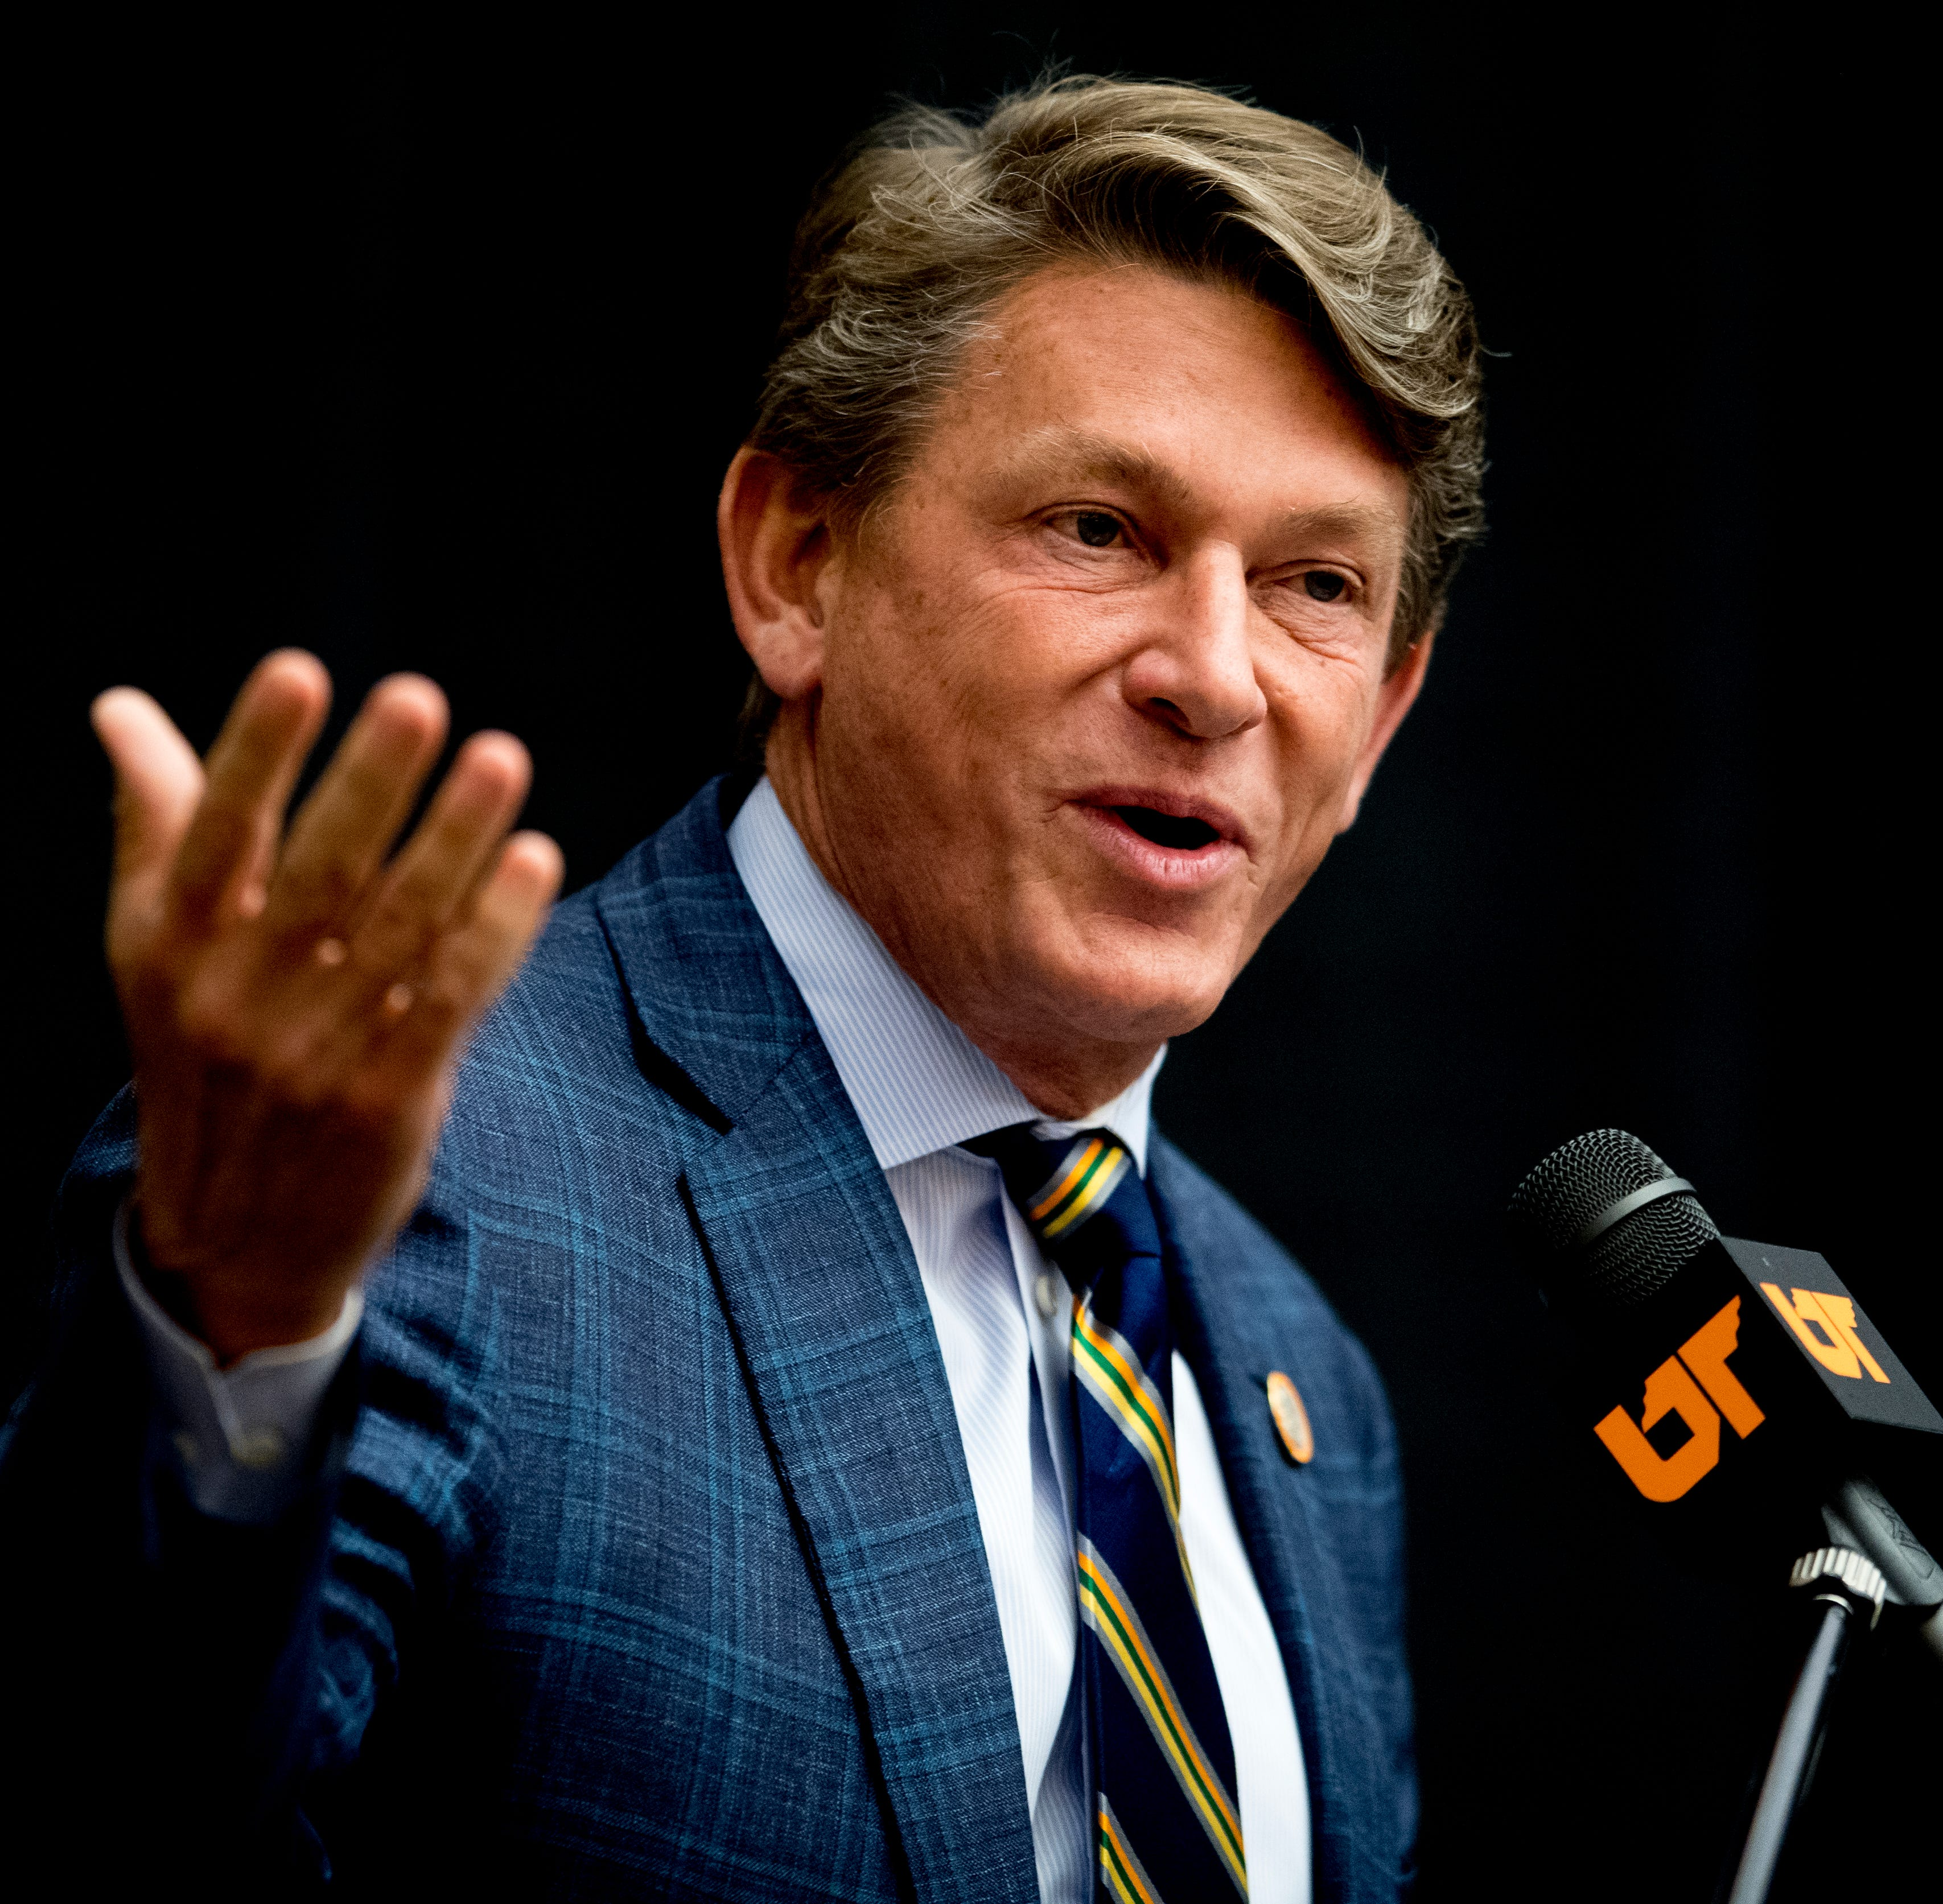 Randy Boyd unanimously approved as University of Tennessee's interim president amid protests